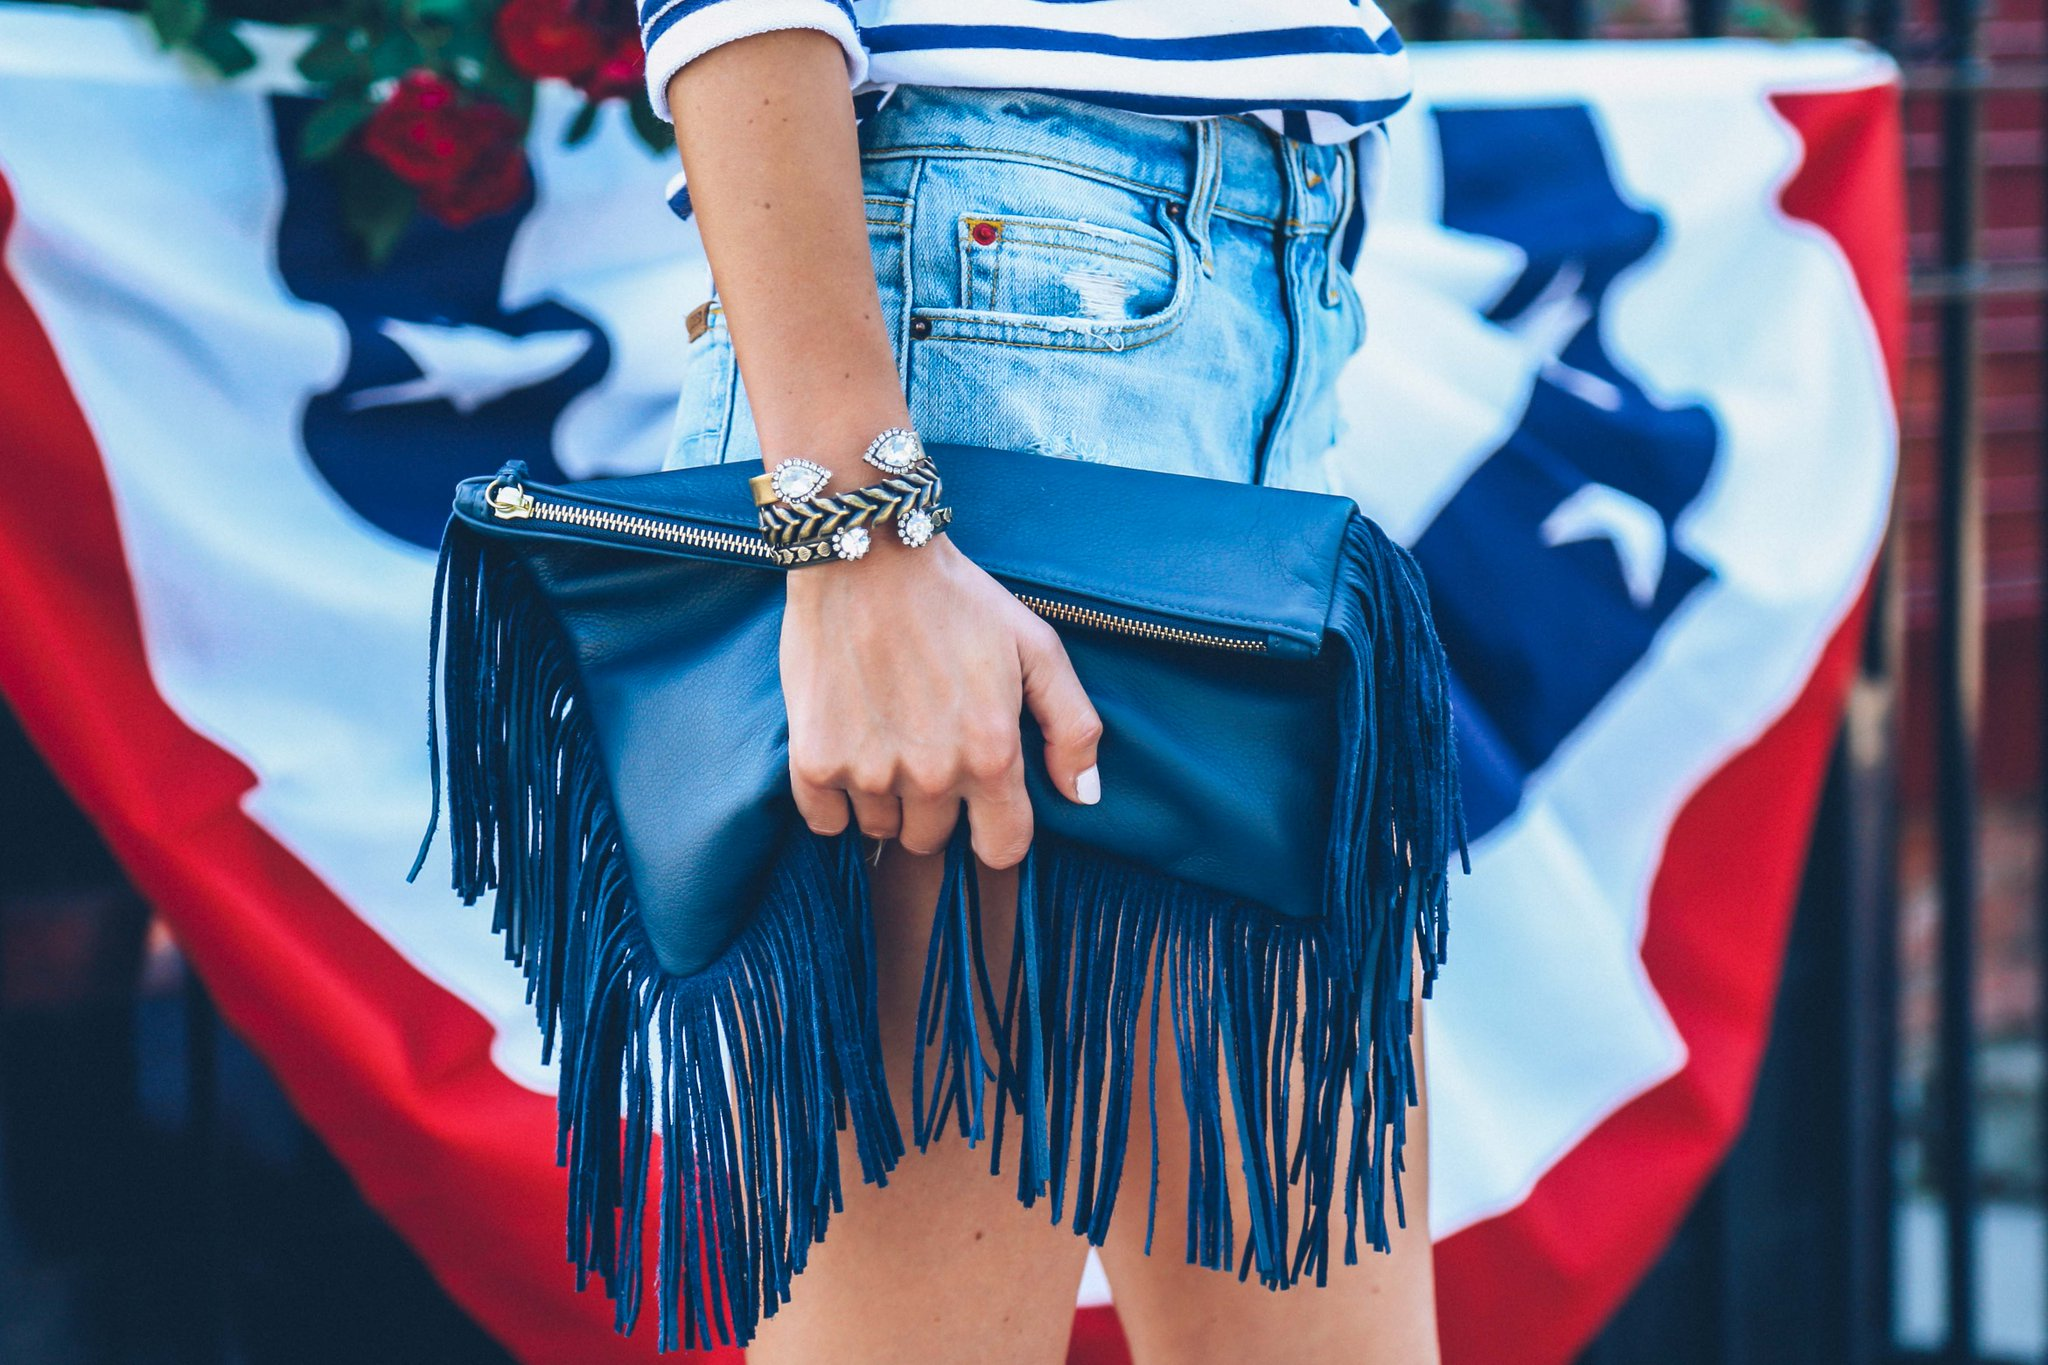 The best sales to shop over this long holiday weekend: http://t.co/v7jL0RAQct #Happy4th #HappyShopping http://t.co/V00jIhObzb